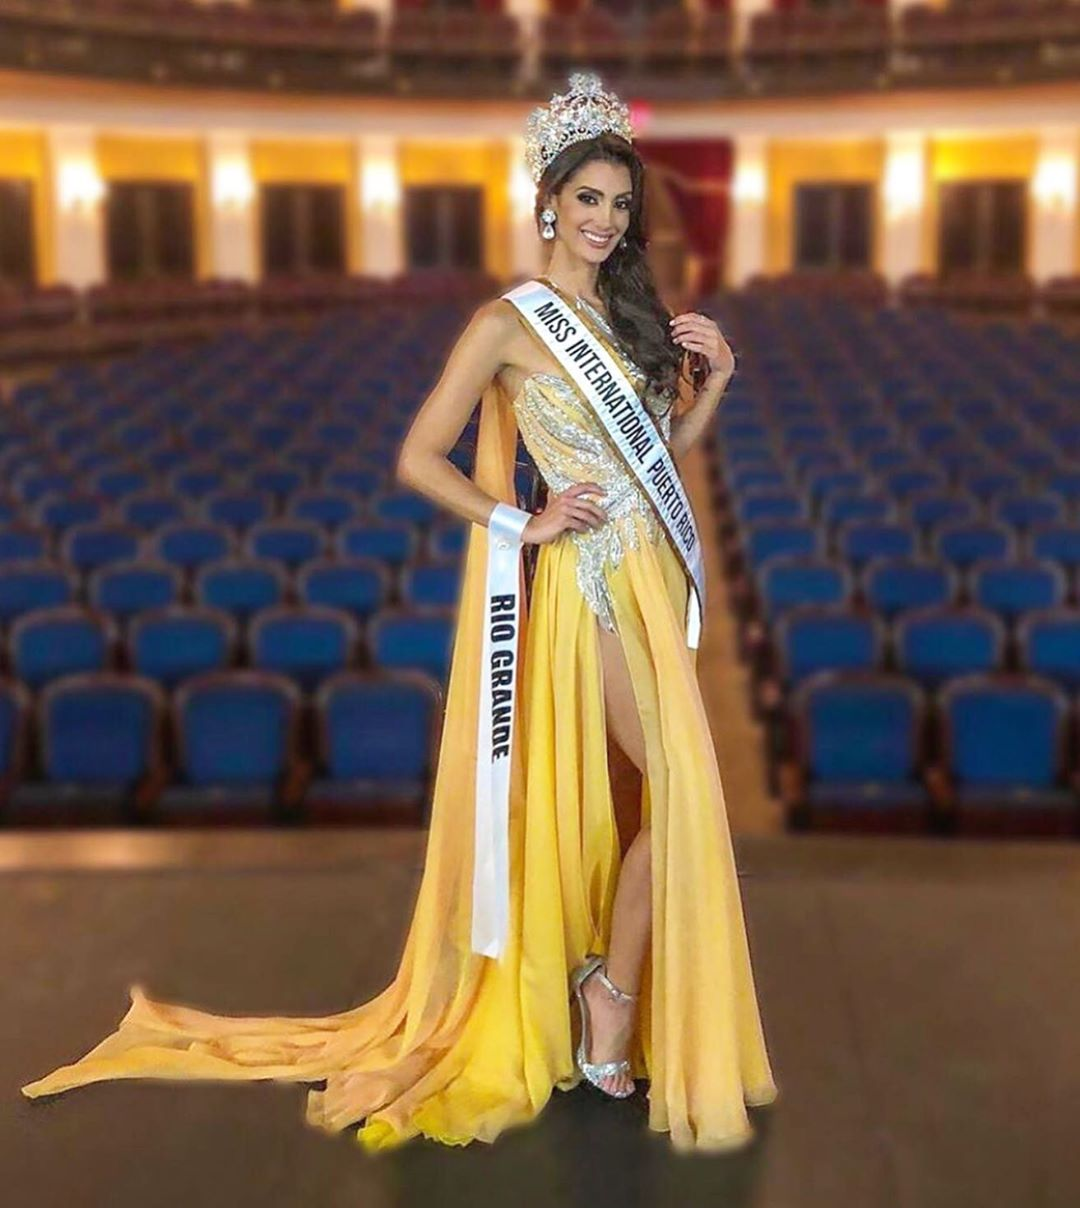 ivana carolina irizarry, miss international puerto rico 2019. 69804510